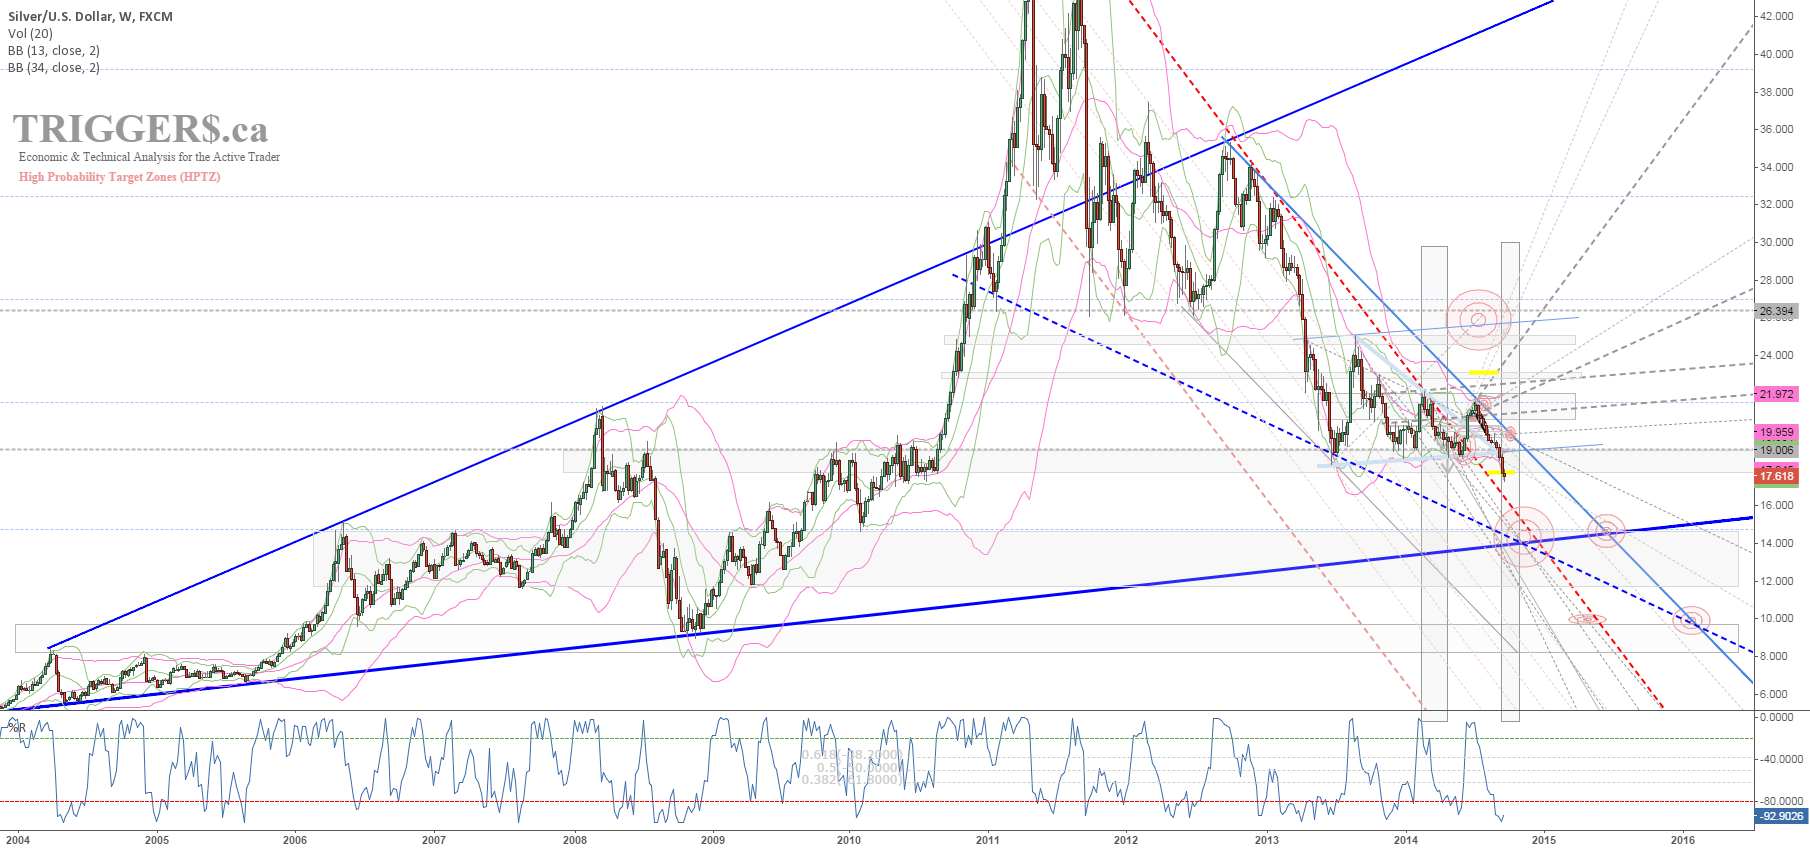 SILVER TRIGGER$ OCT 2014 WEEKLY